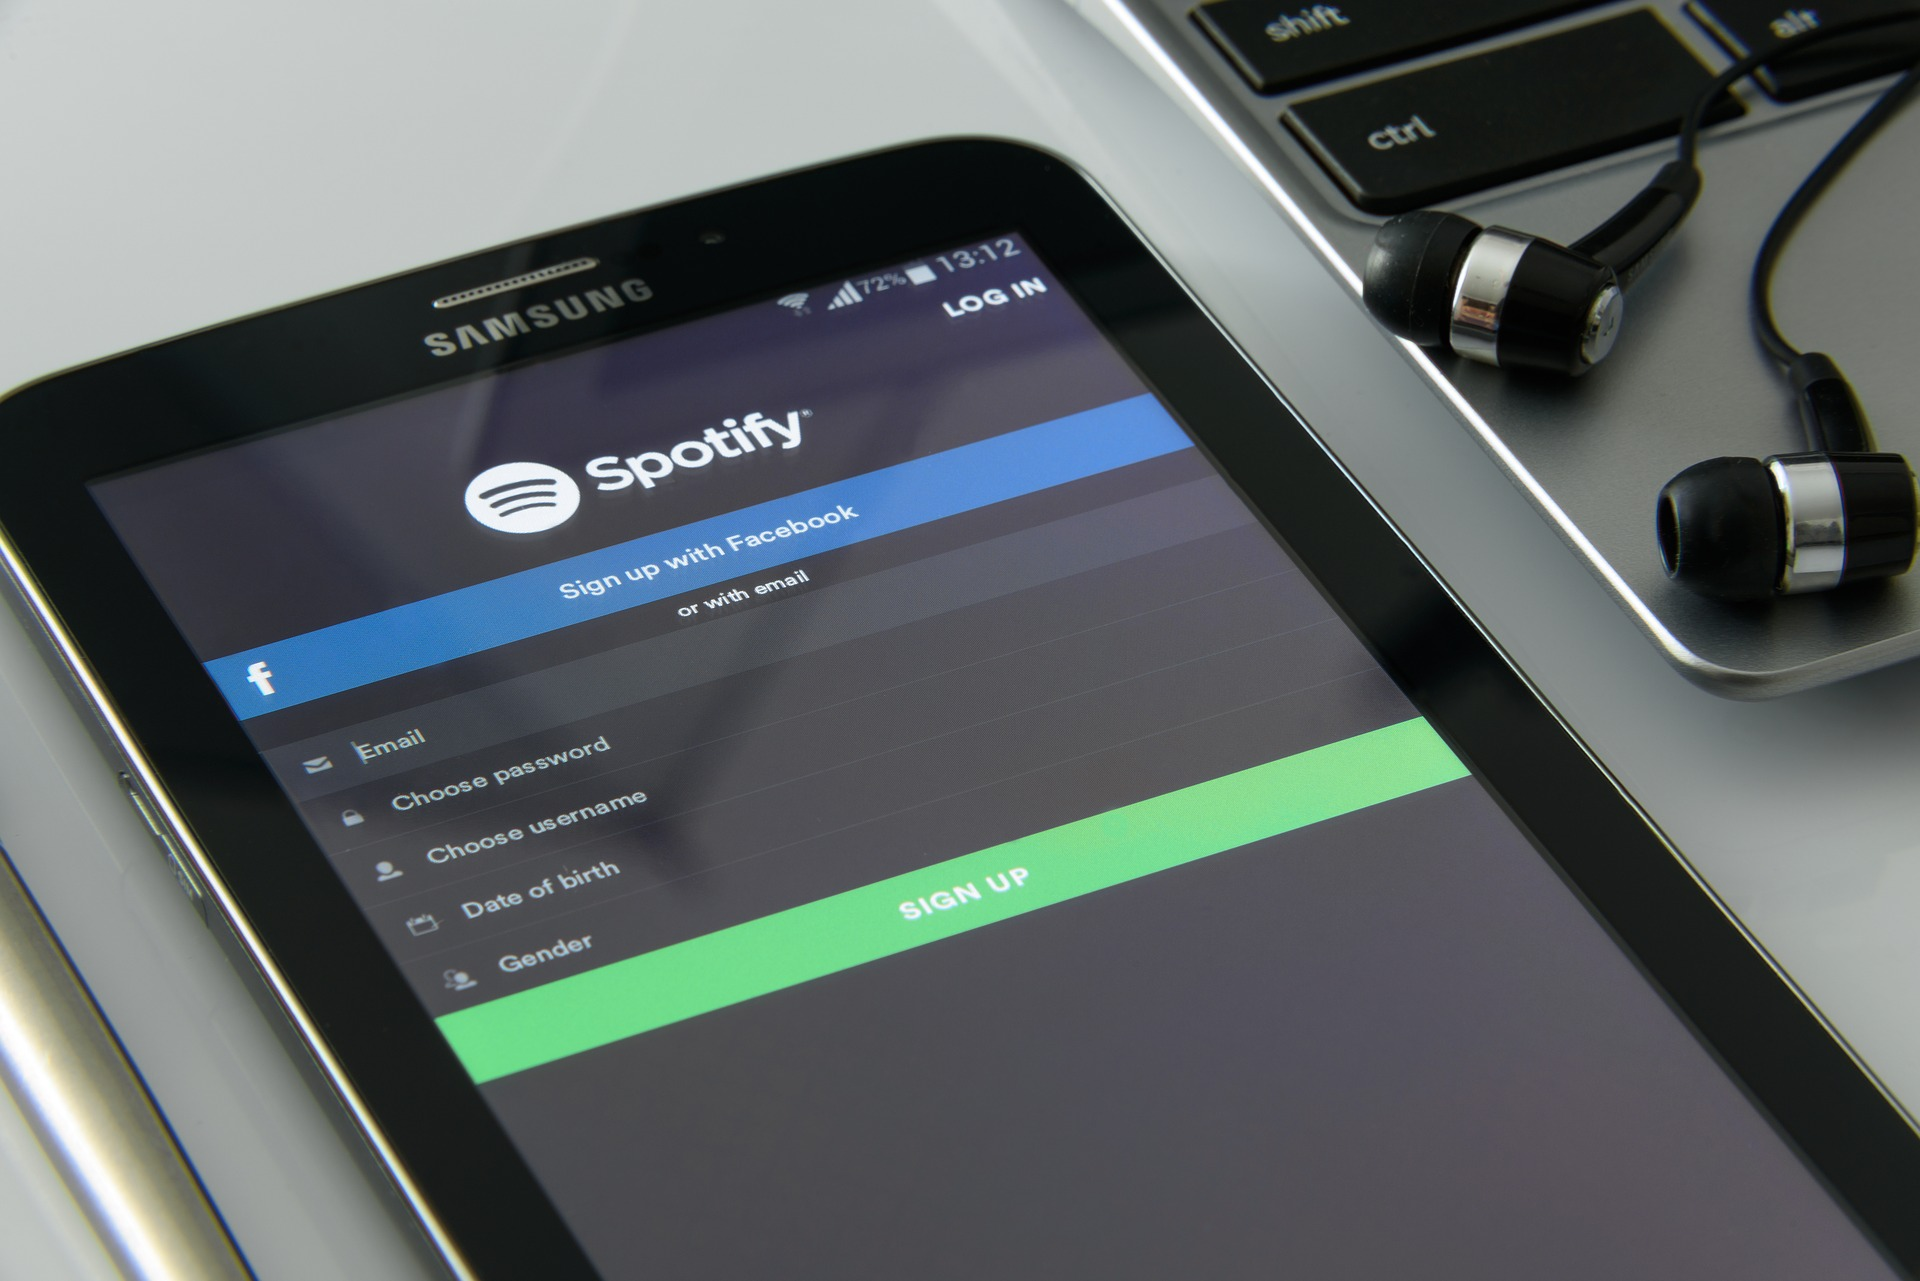 Spotify compra empresas de podcasts; lucro da empresa surpreende